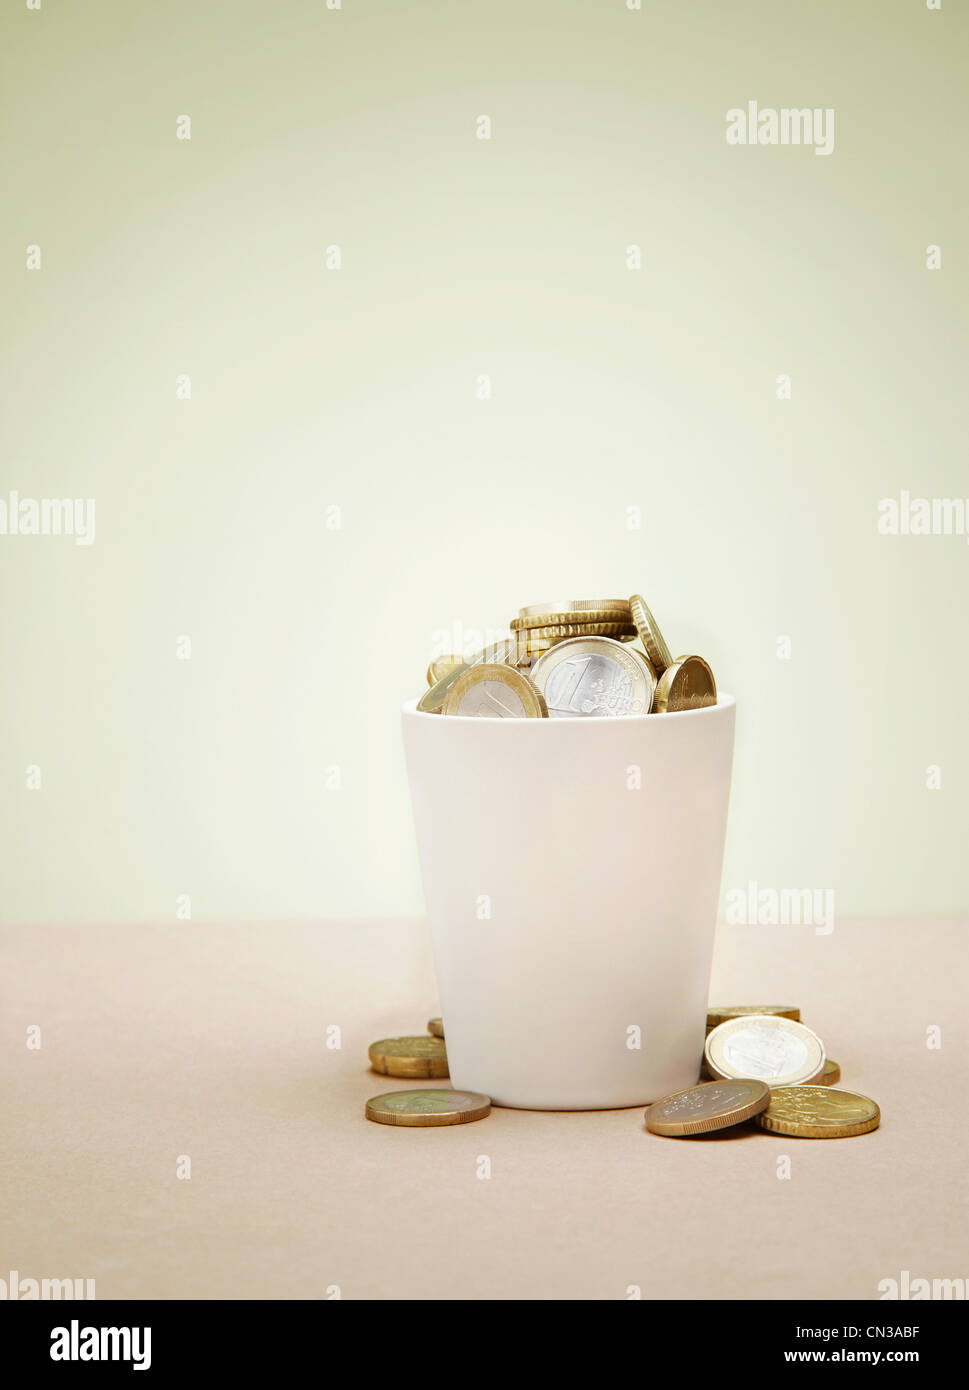 Plant pot full of euro coins - Stock Image